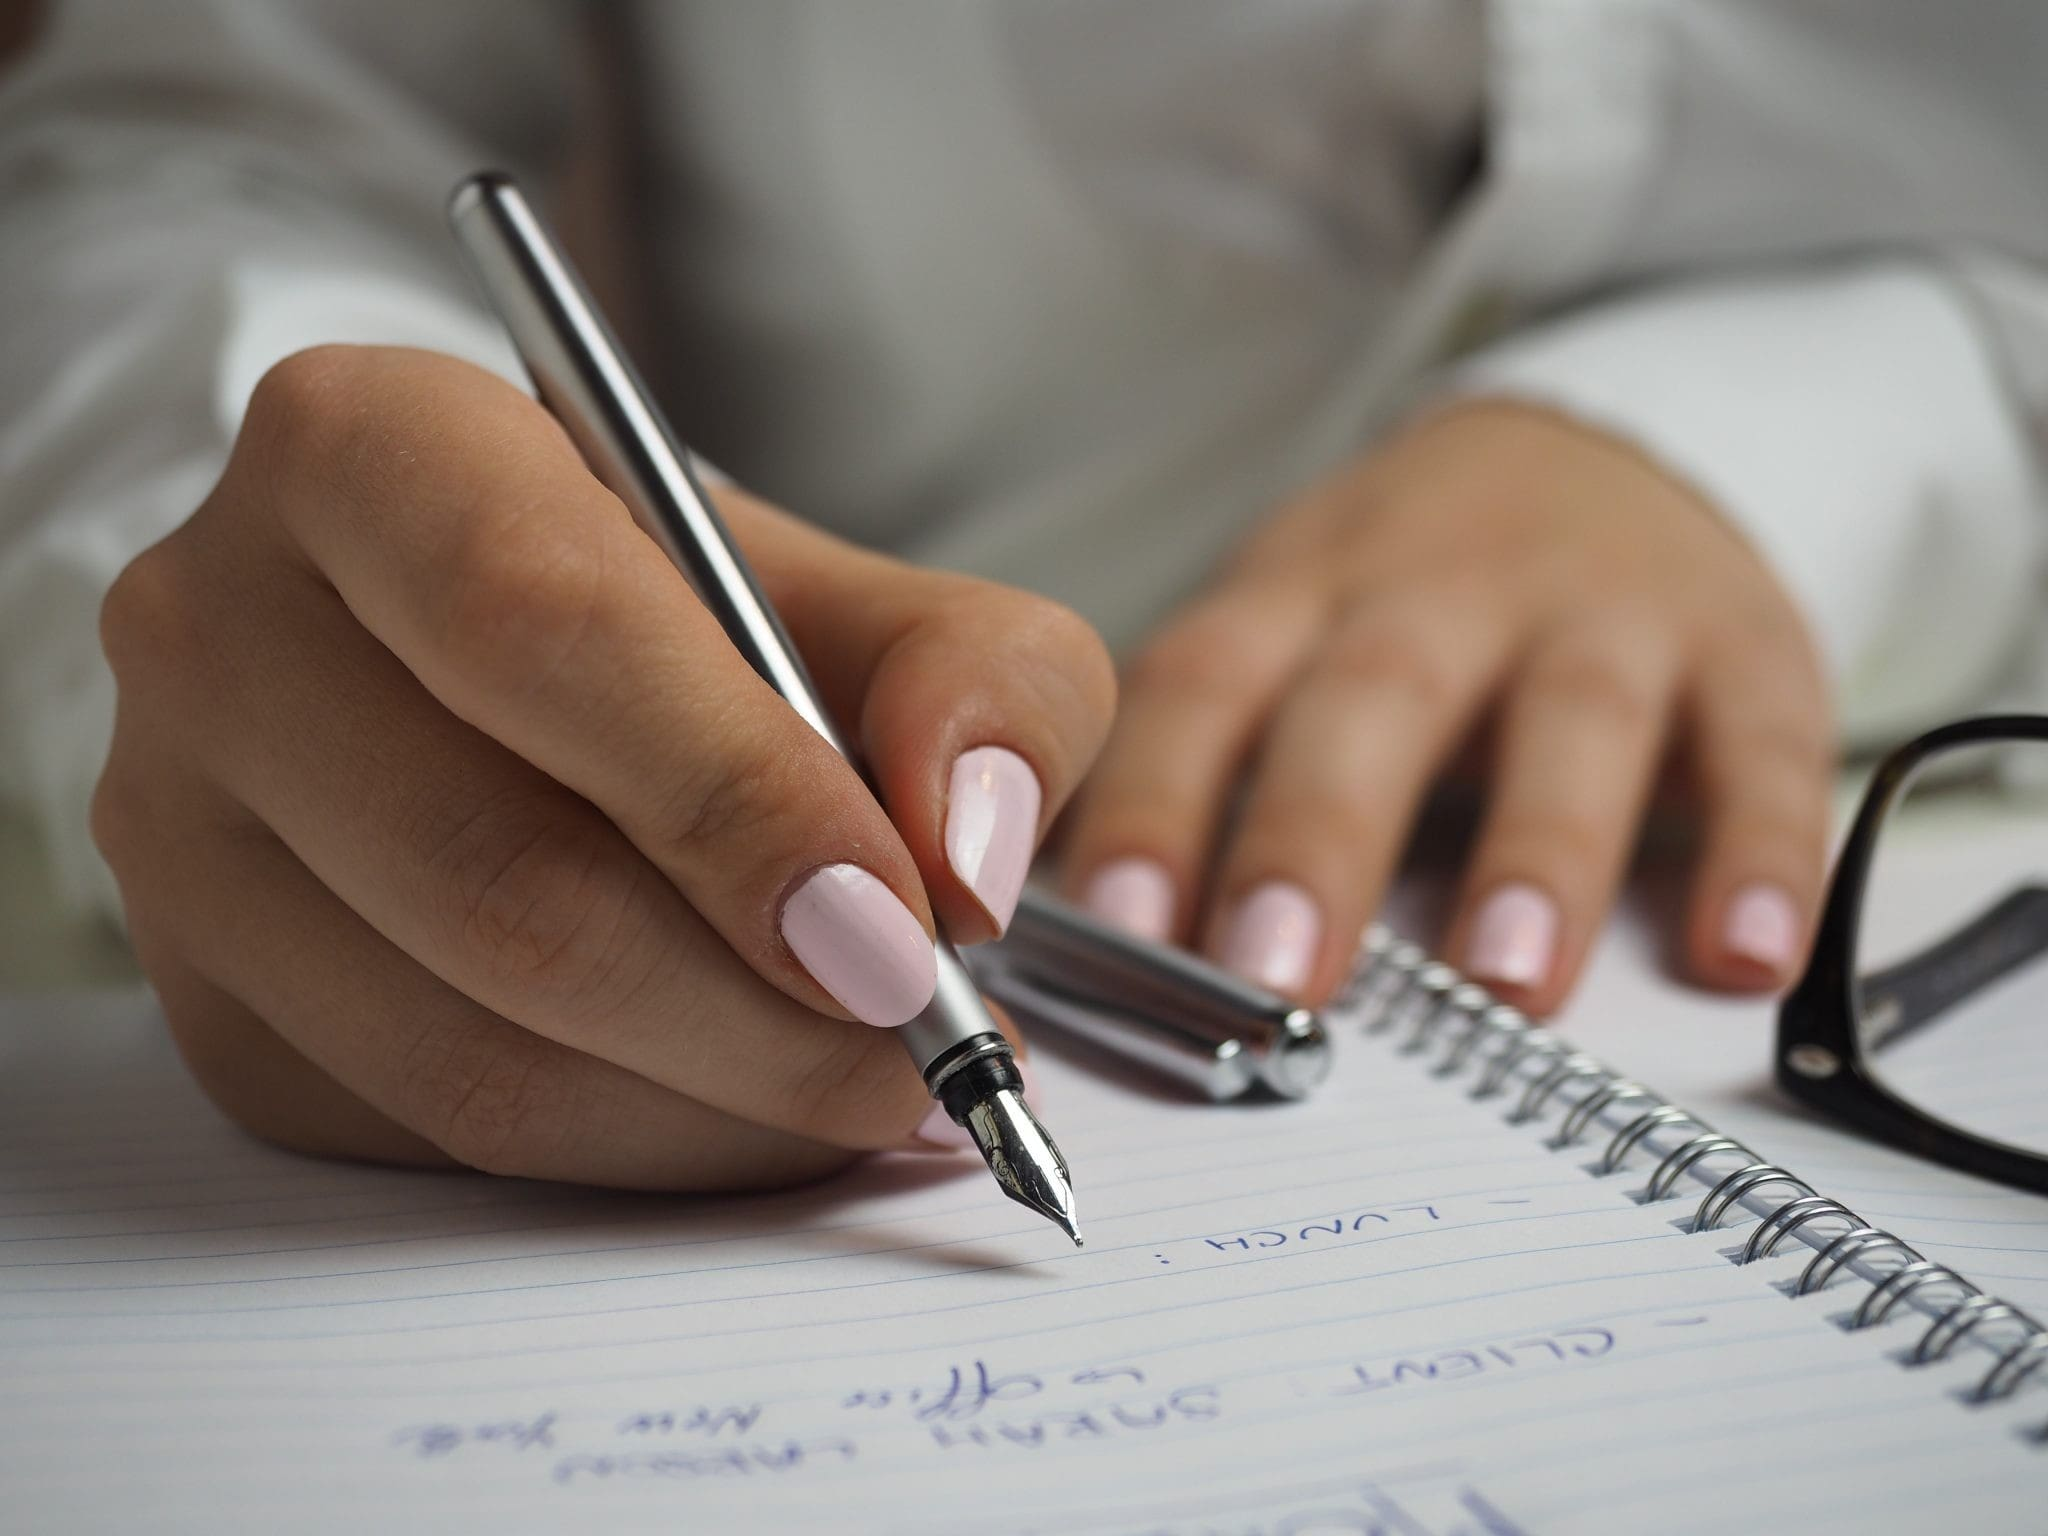 buying techniques: a woman, close up on her hands, writing a list on a sheet of paper.